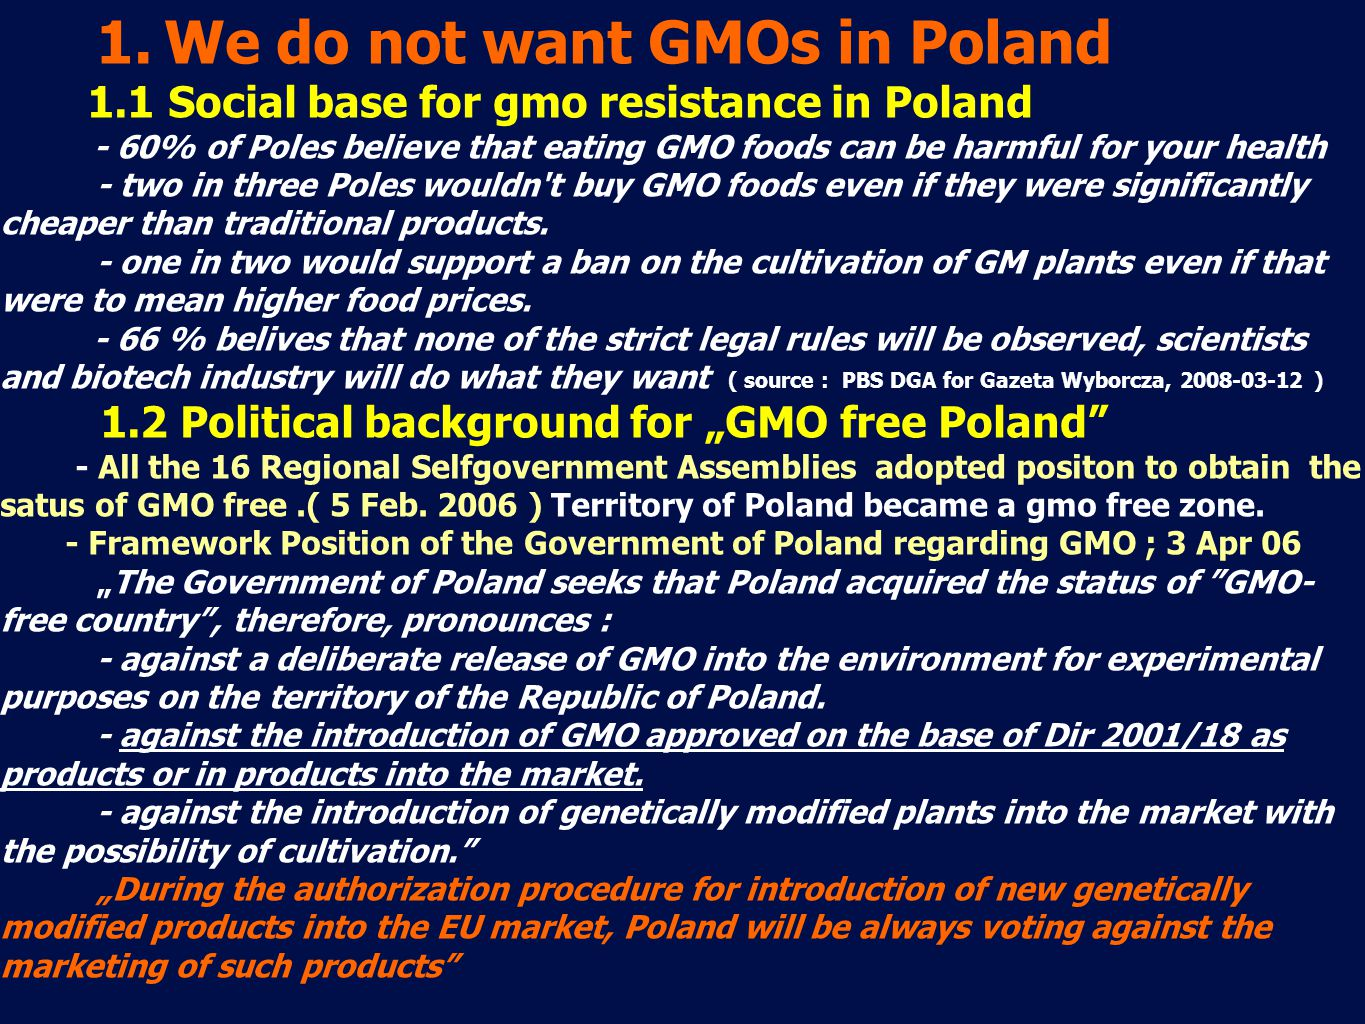 1. We do not want GMOs in Poland 1.1 Social base for gmo resistance in Poland - 60% of Poles believe that eating GMO foods can be harmful for your hea